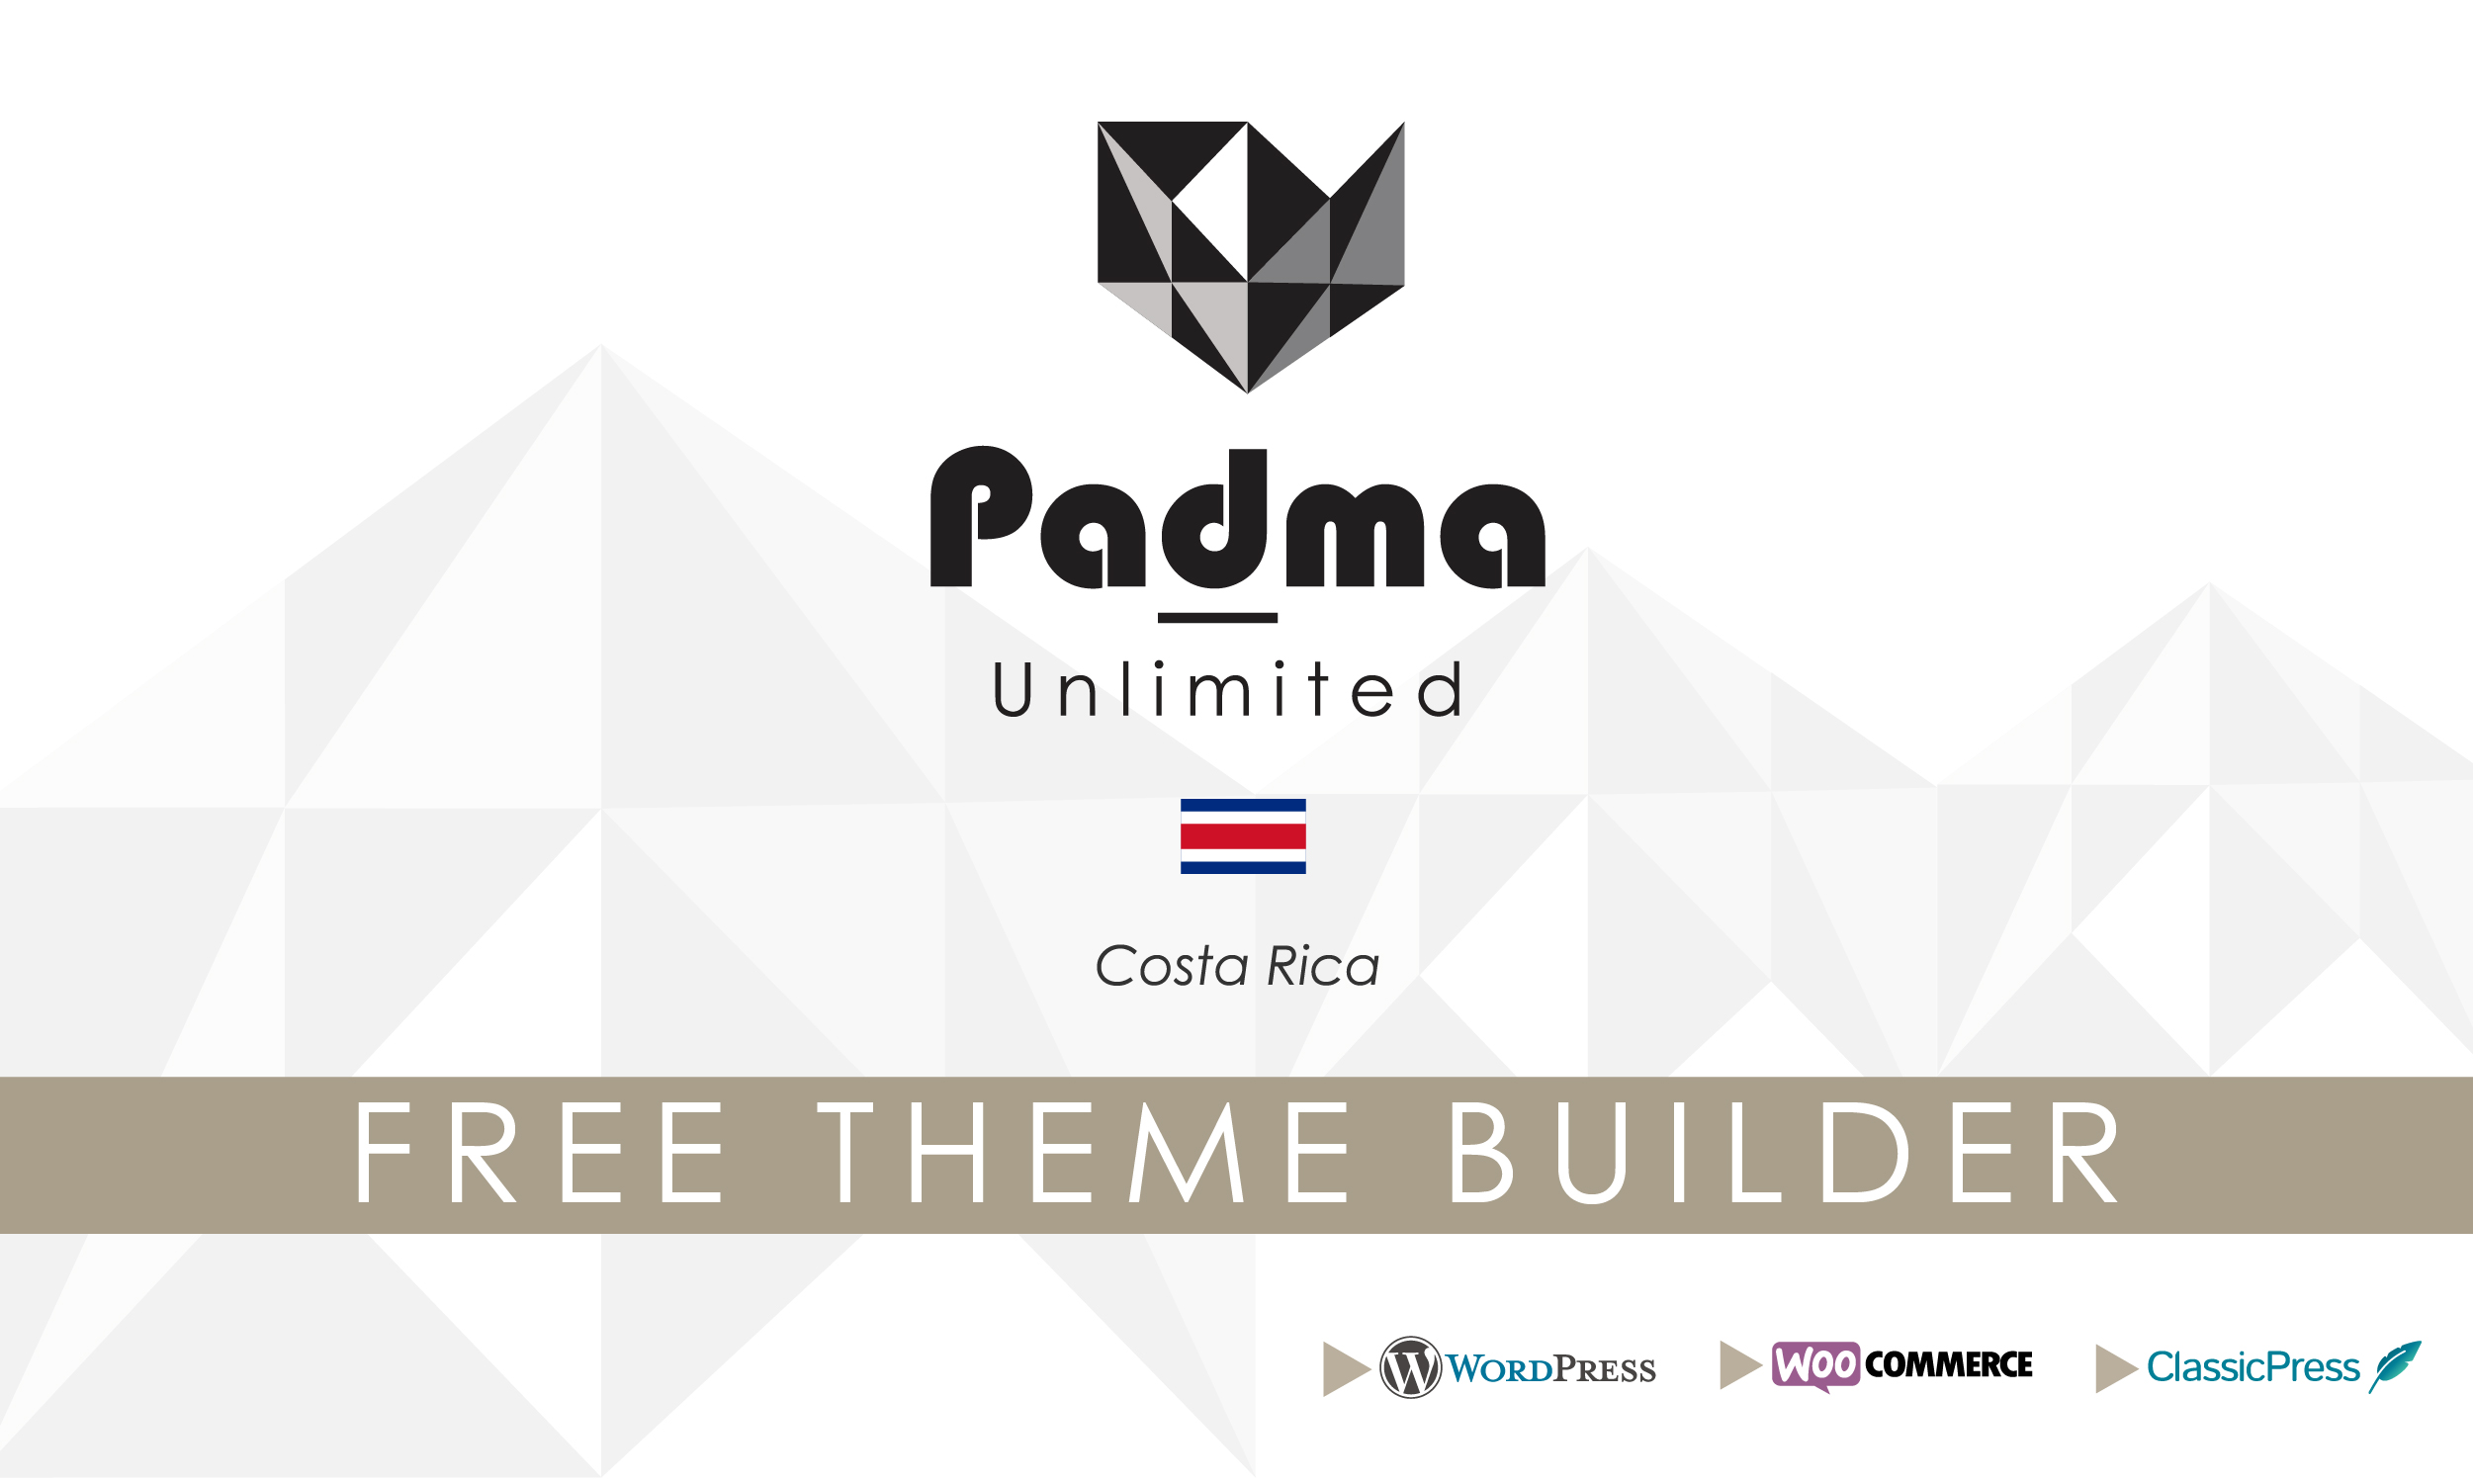 Introducing Padma | Unlimited